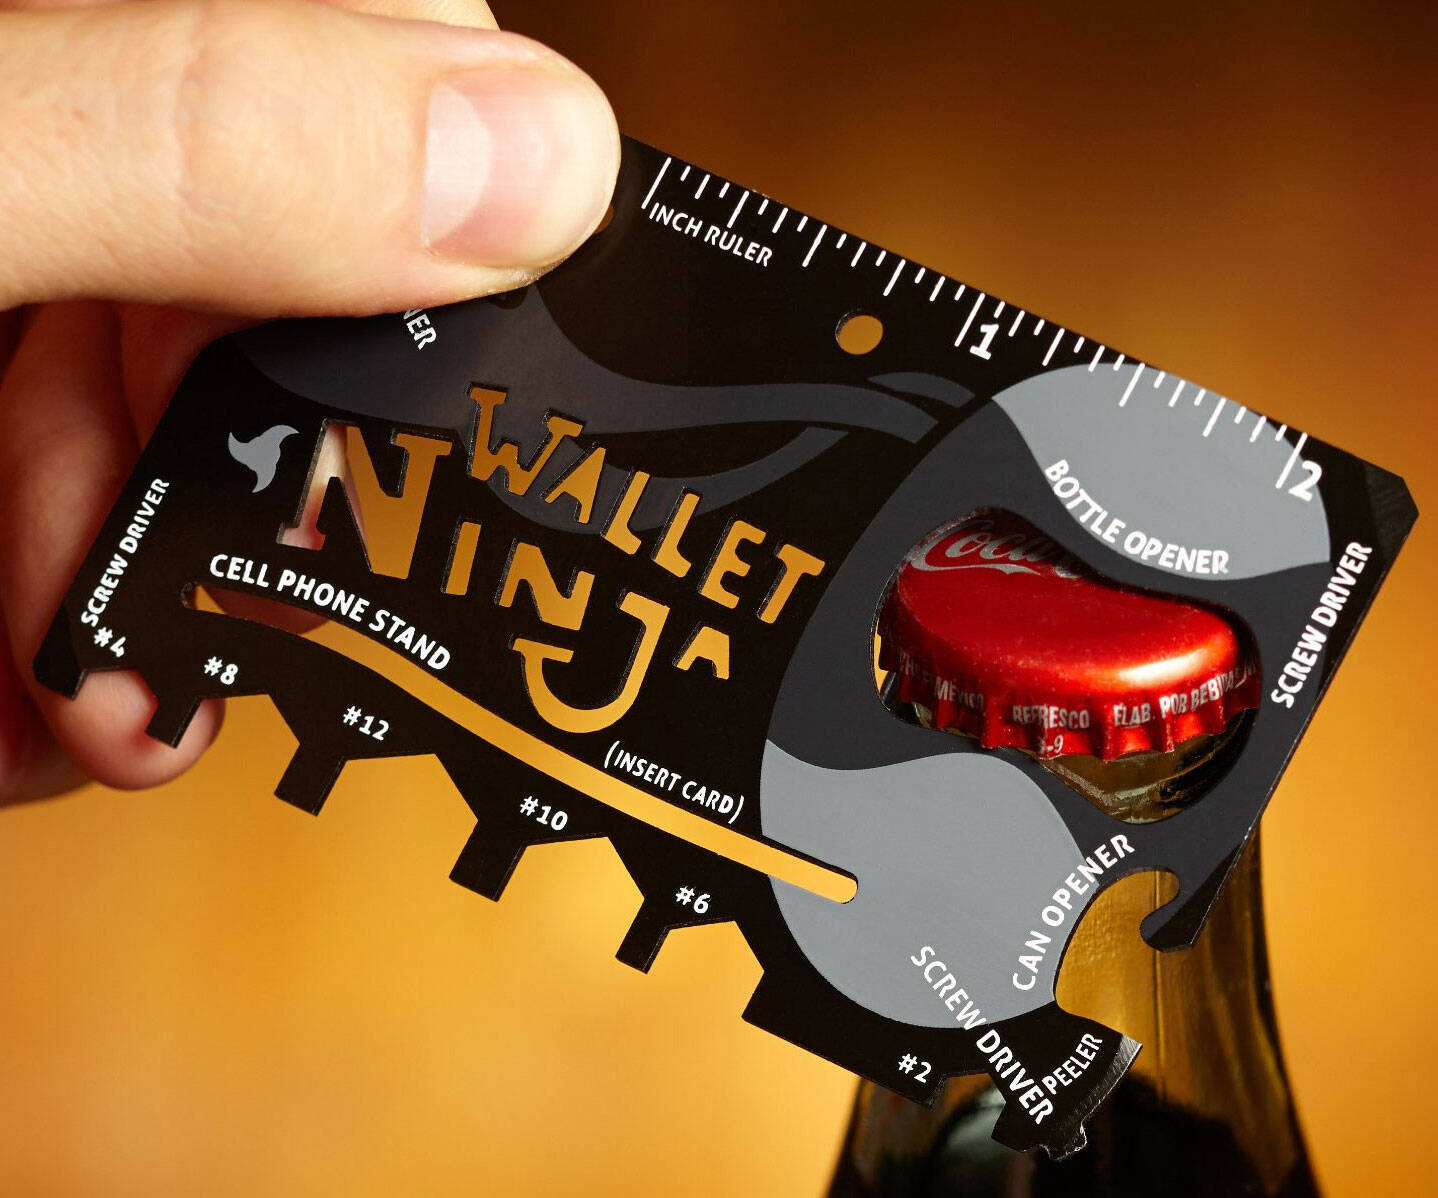 Credit Card Sized Multi Tool - http://coolthings.us